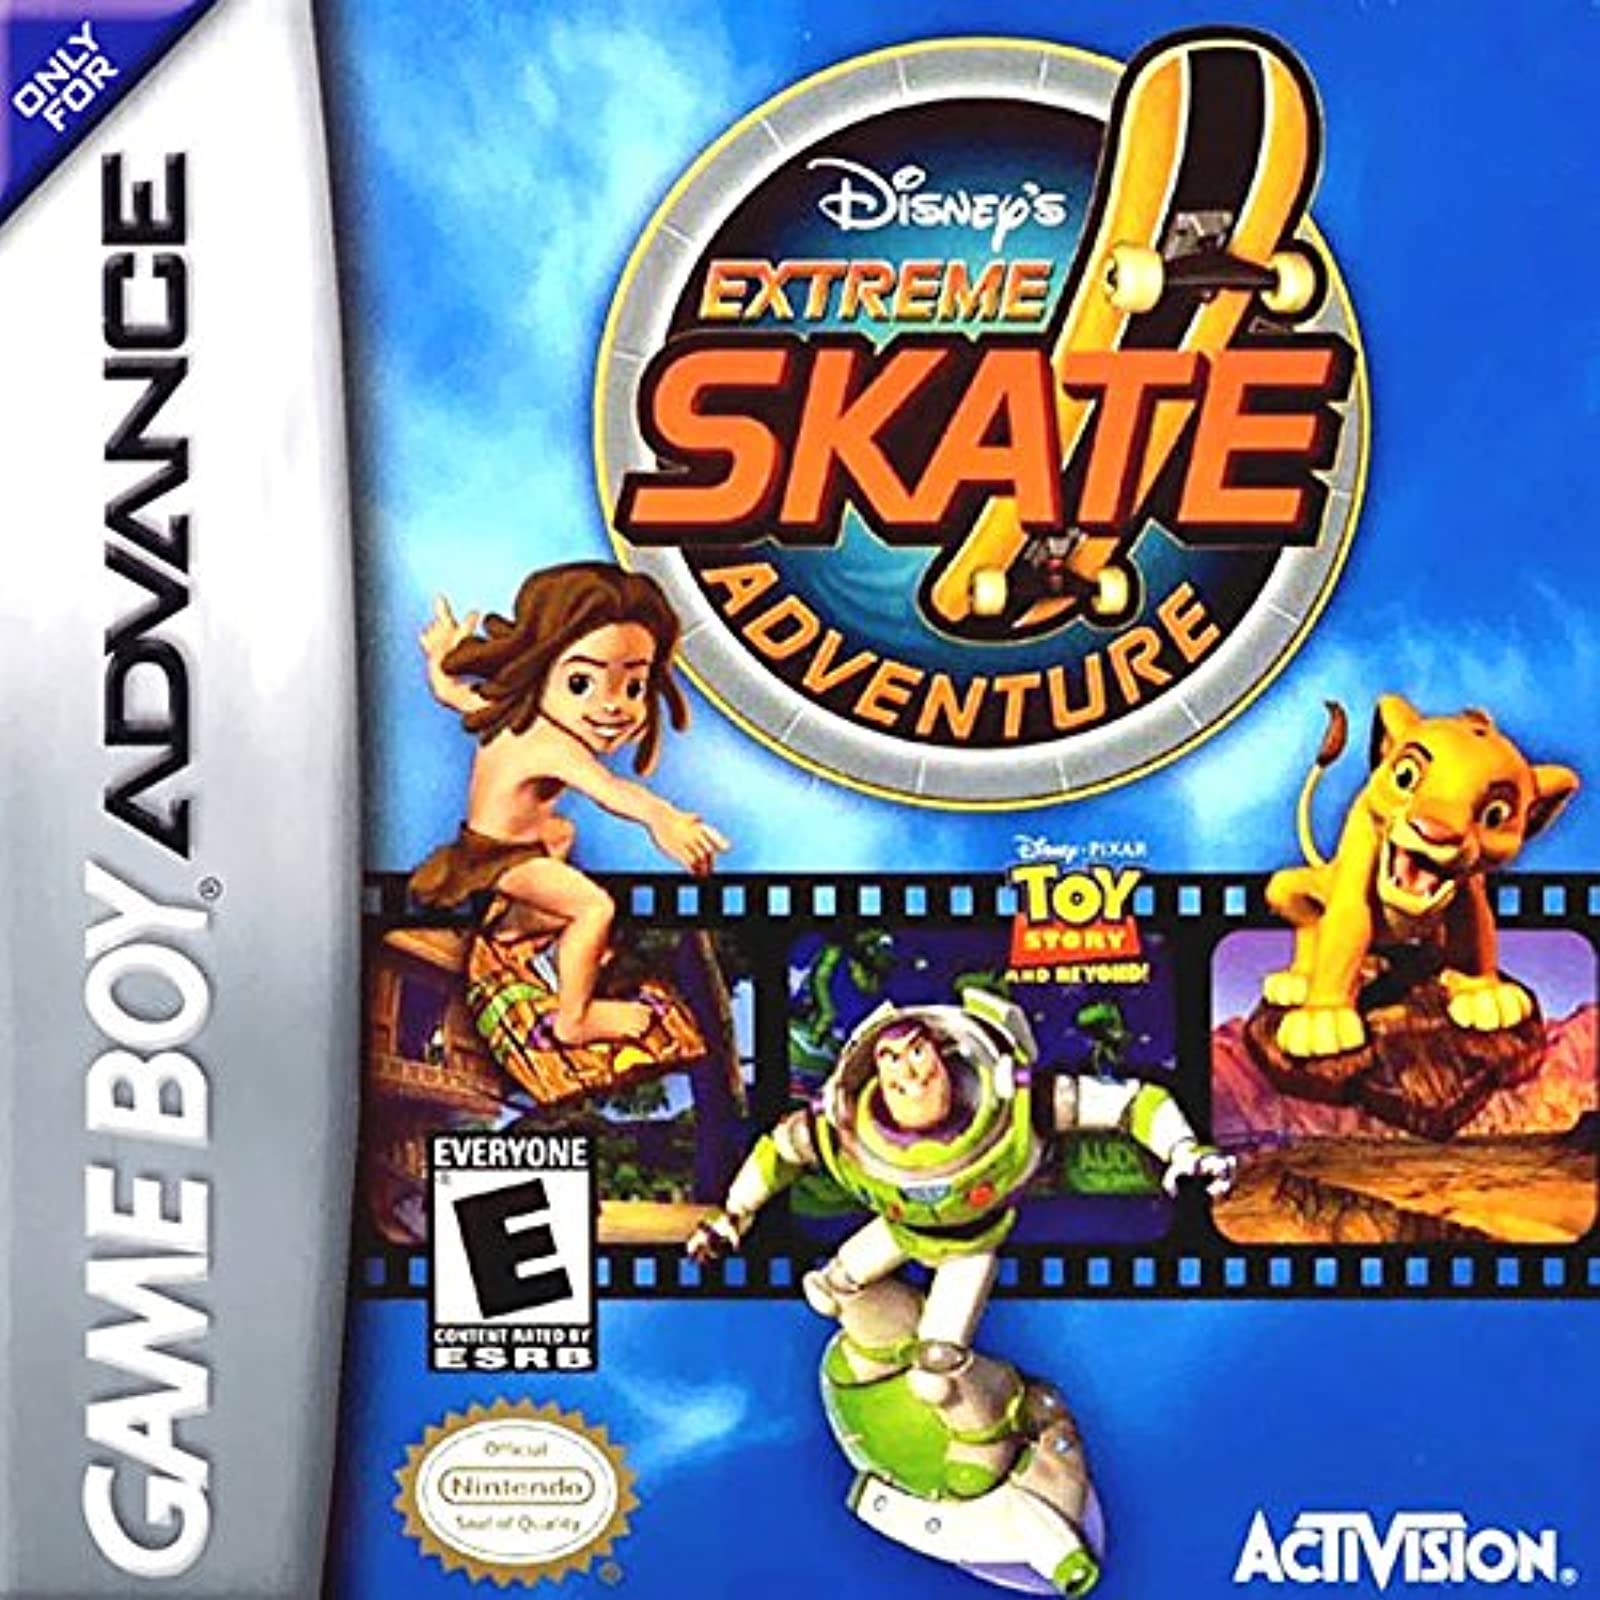 Disney's Extreme Skate Adventure For GBA Gameboy Advance Racing